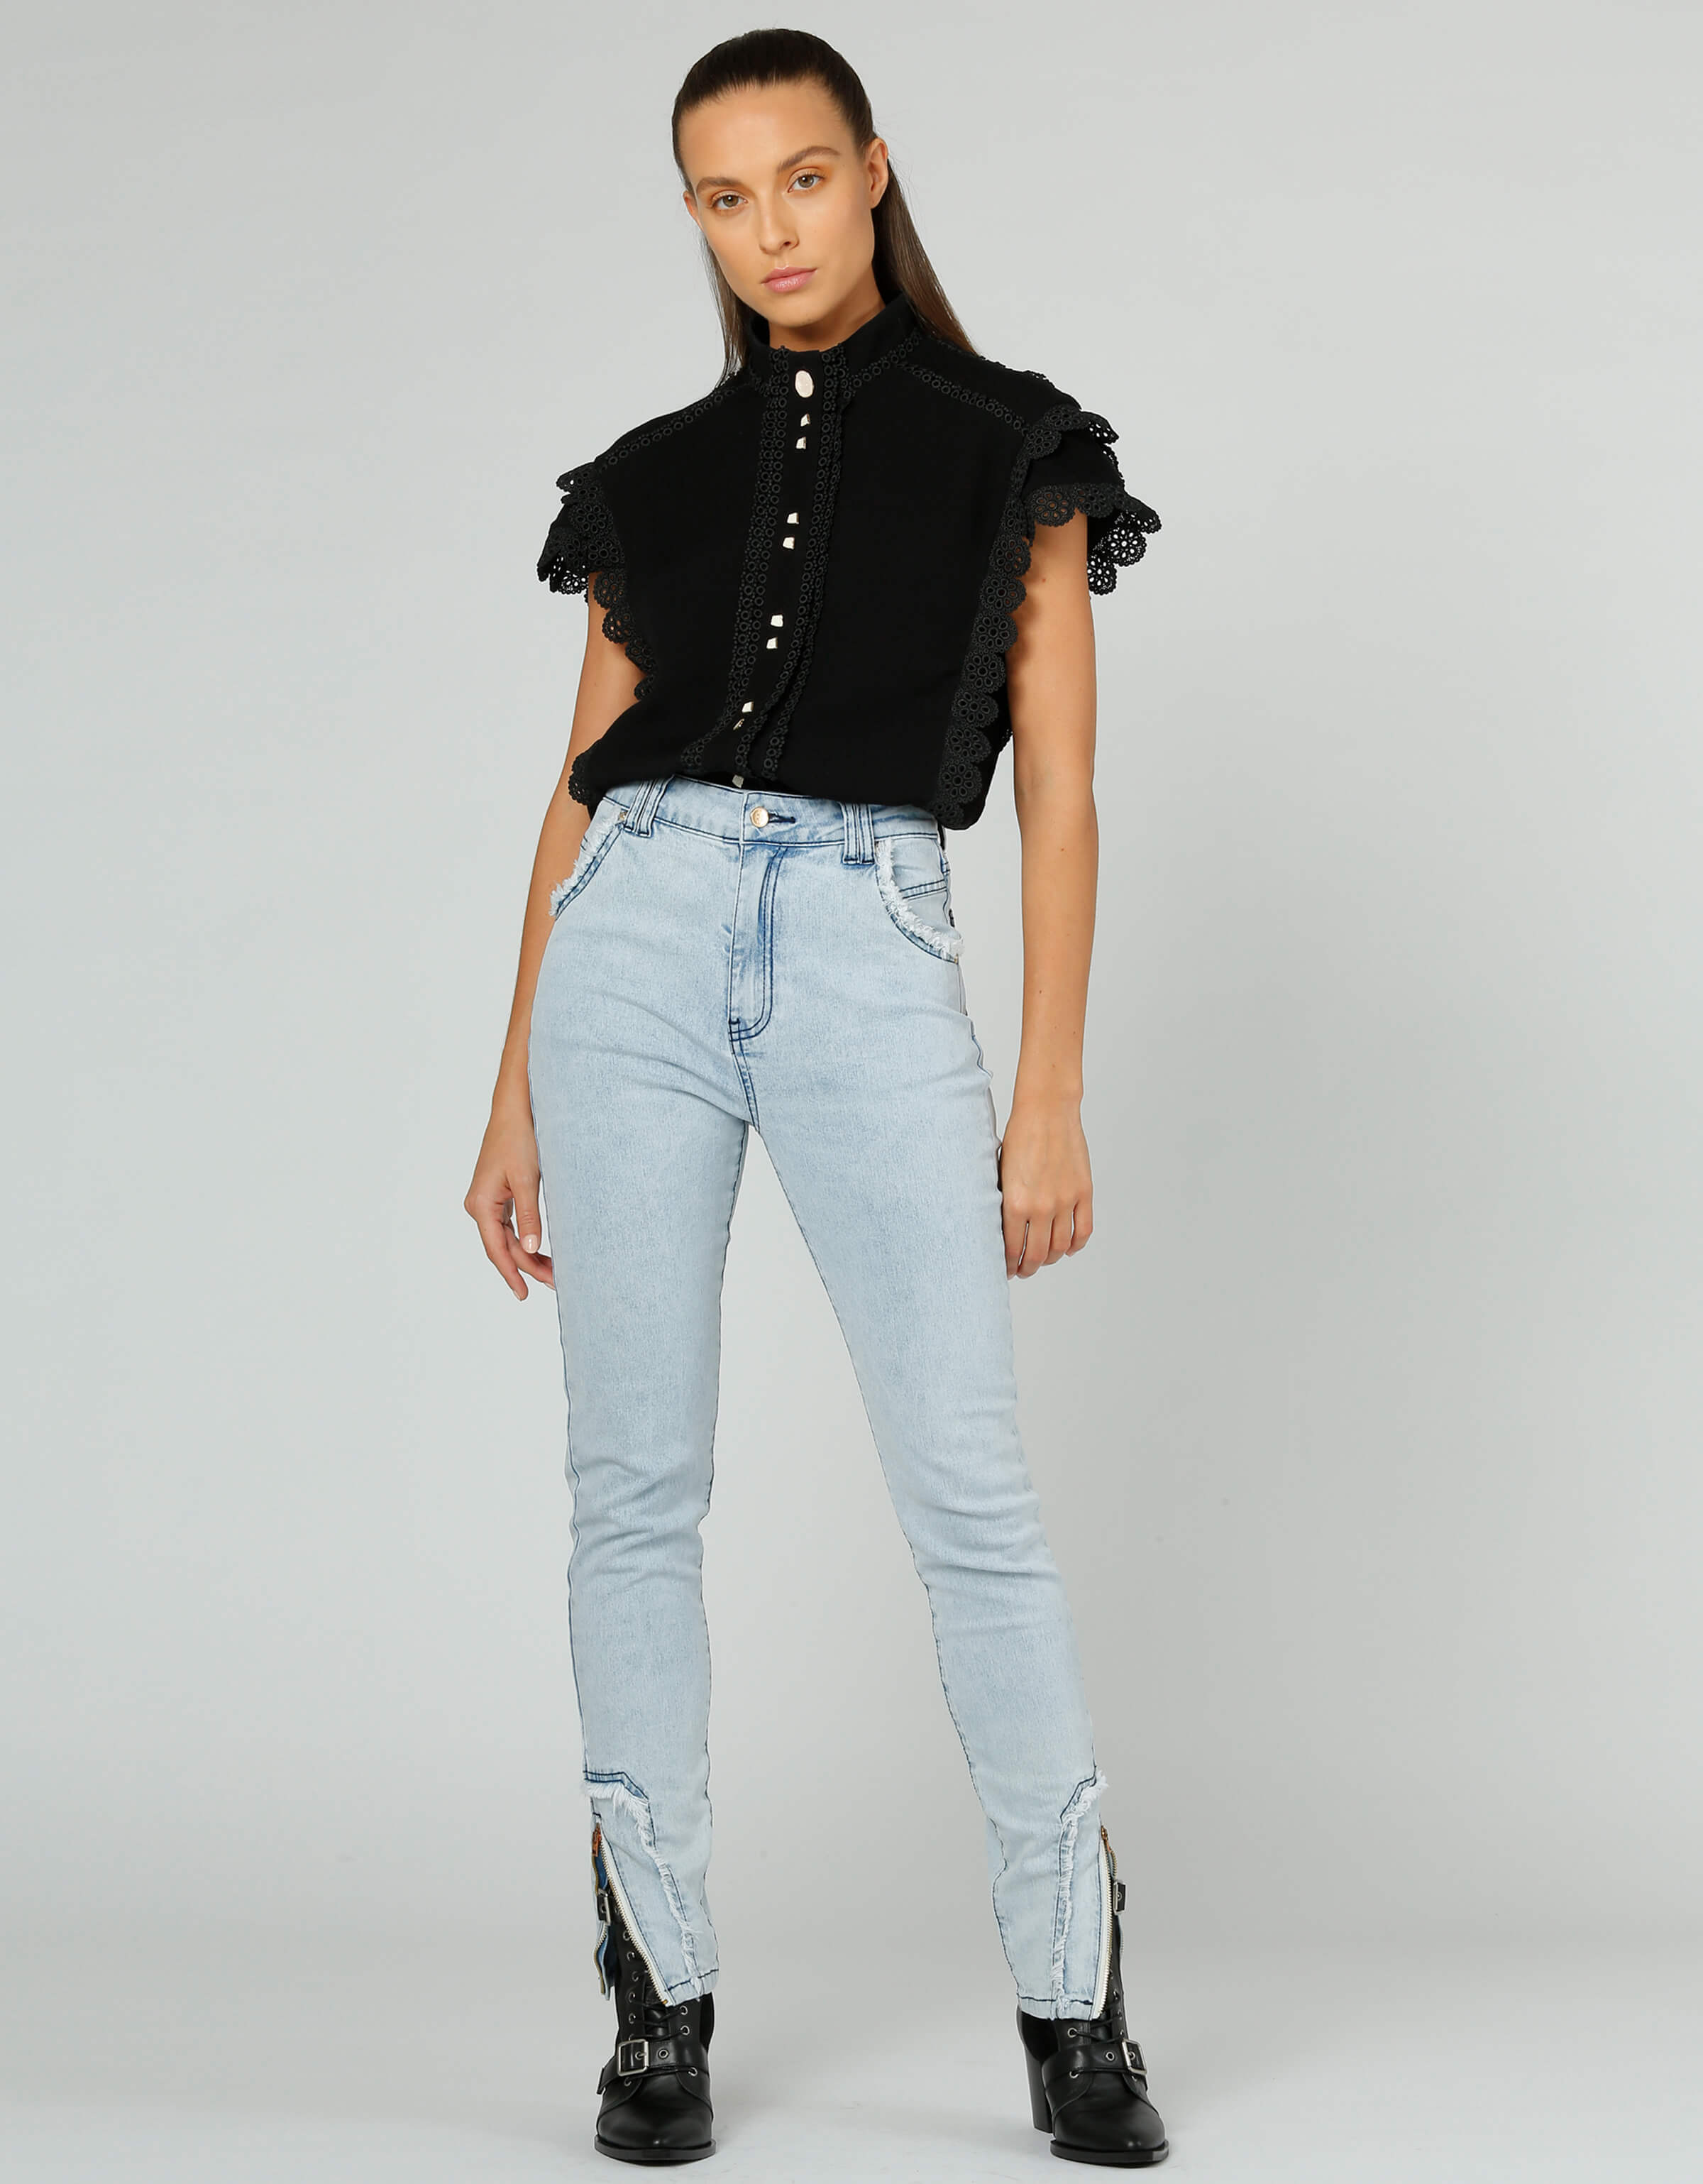 IXIAH - WEST END JEAN